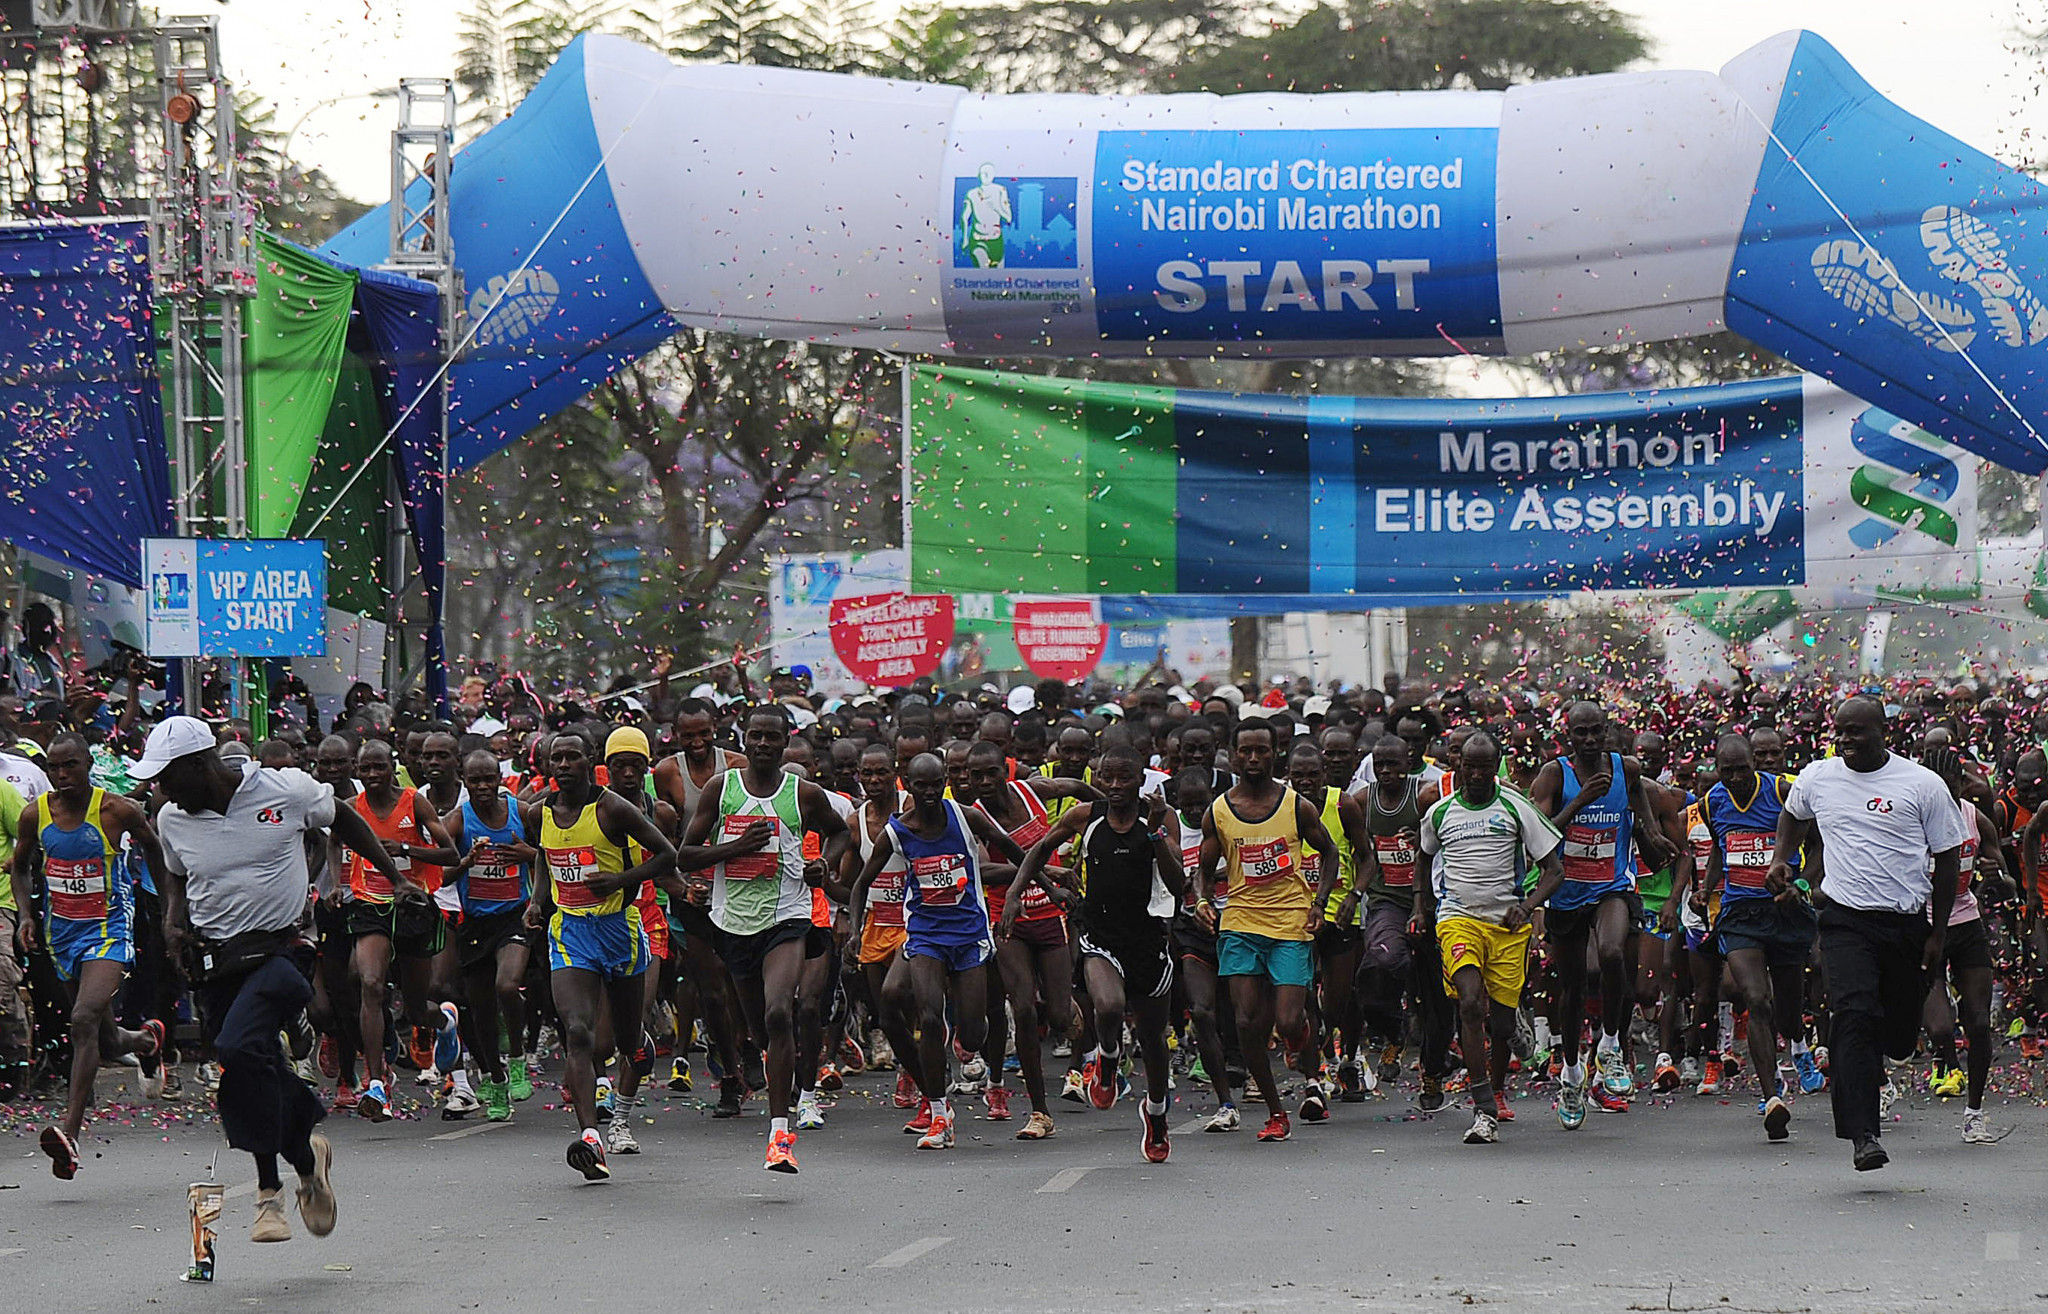 Standard Chartered backs the Nairobi Marathon which was cancelled this year ©Getty Images